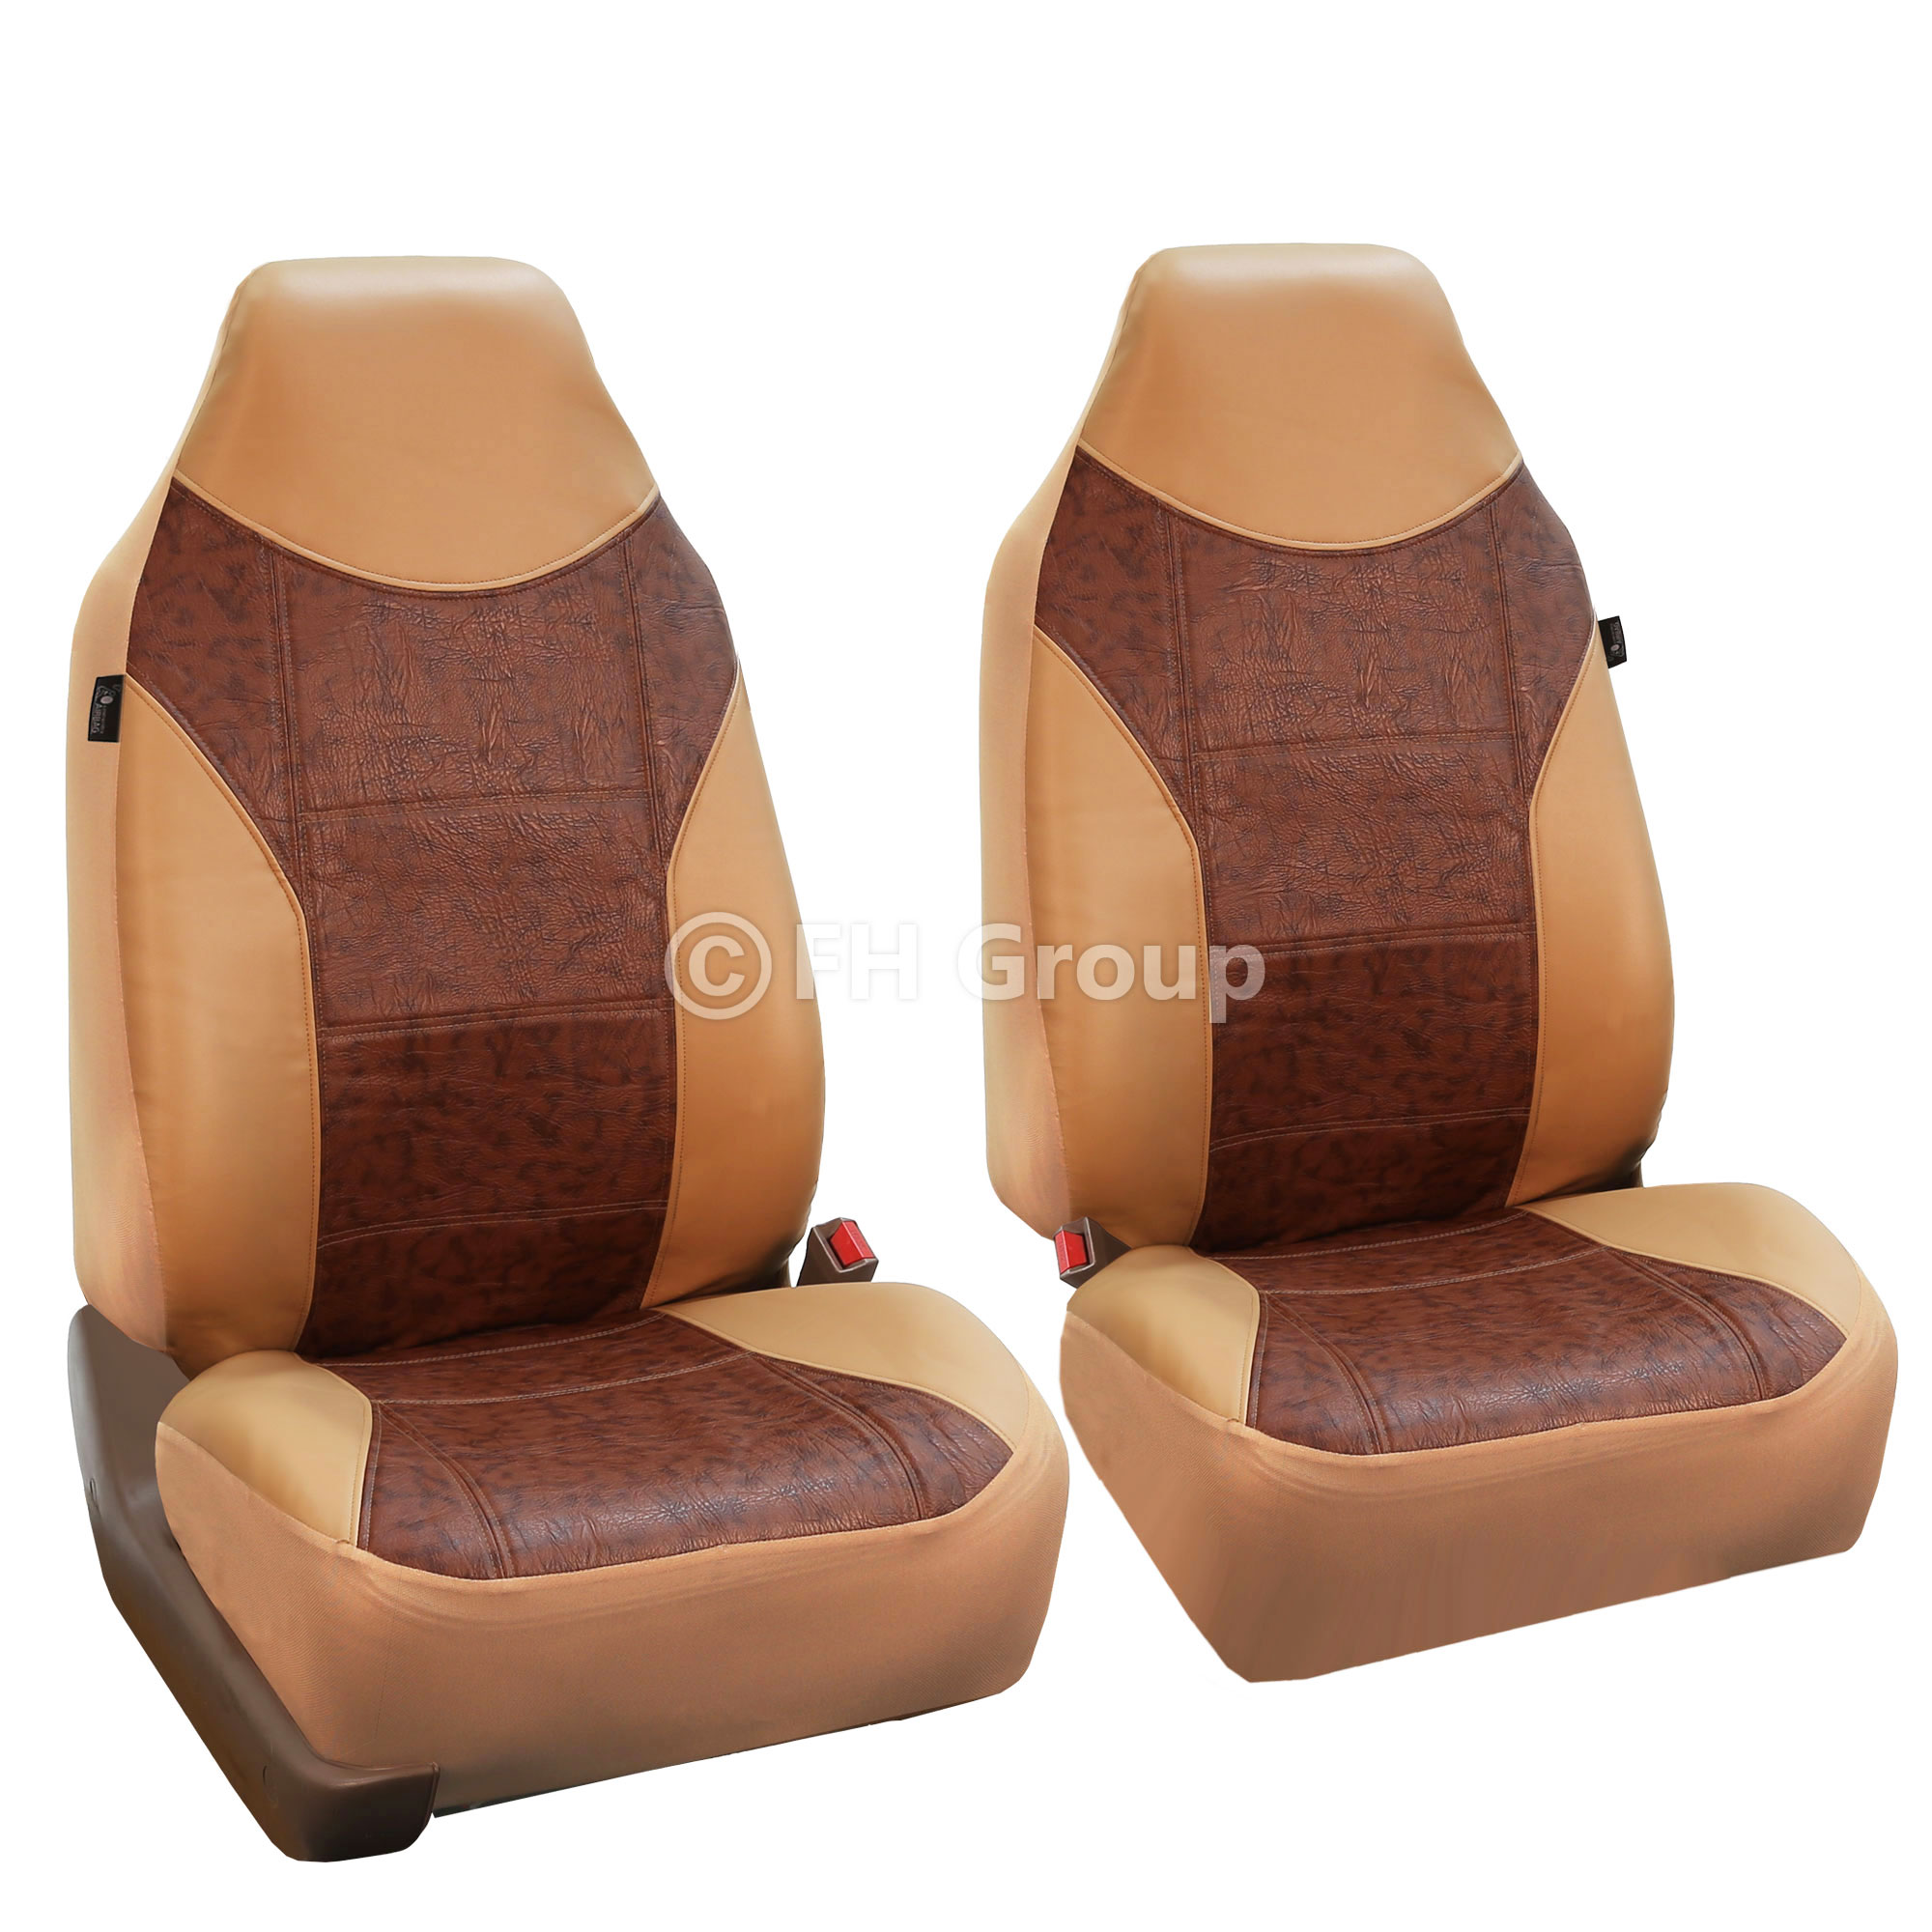 Faux Leather Highback Front Bukcet Seat Covers For Auto